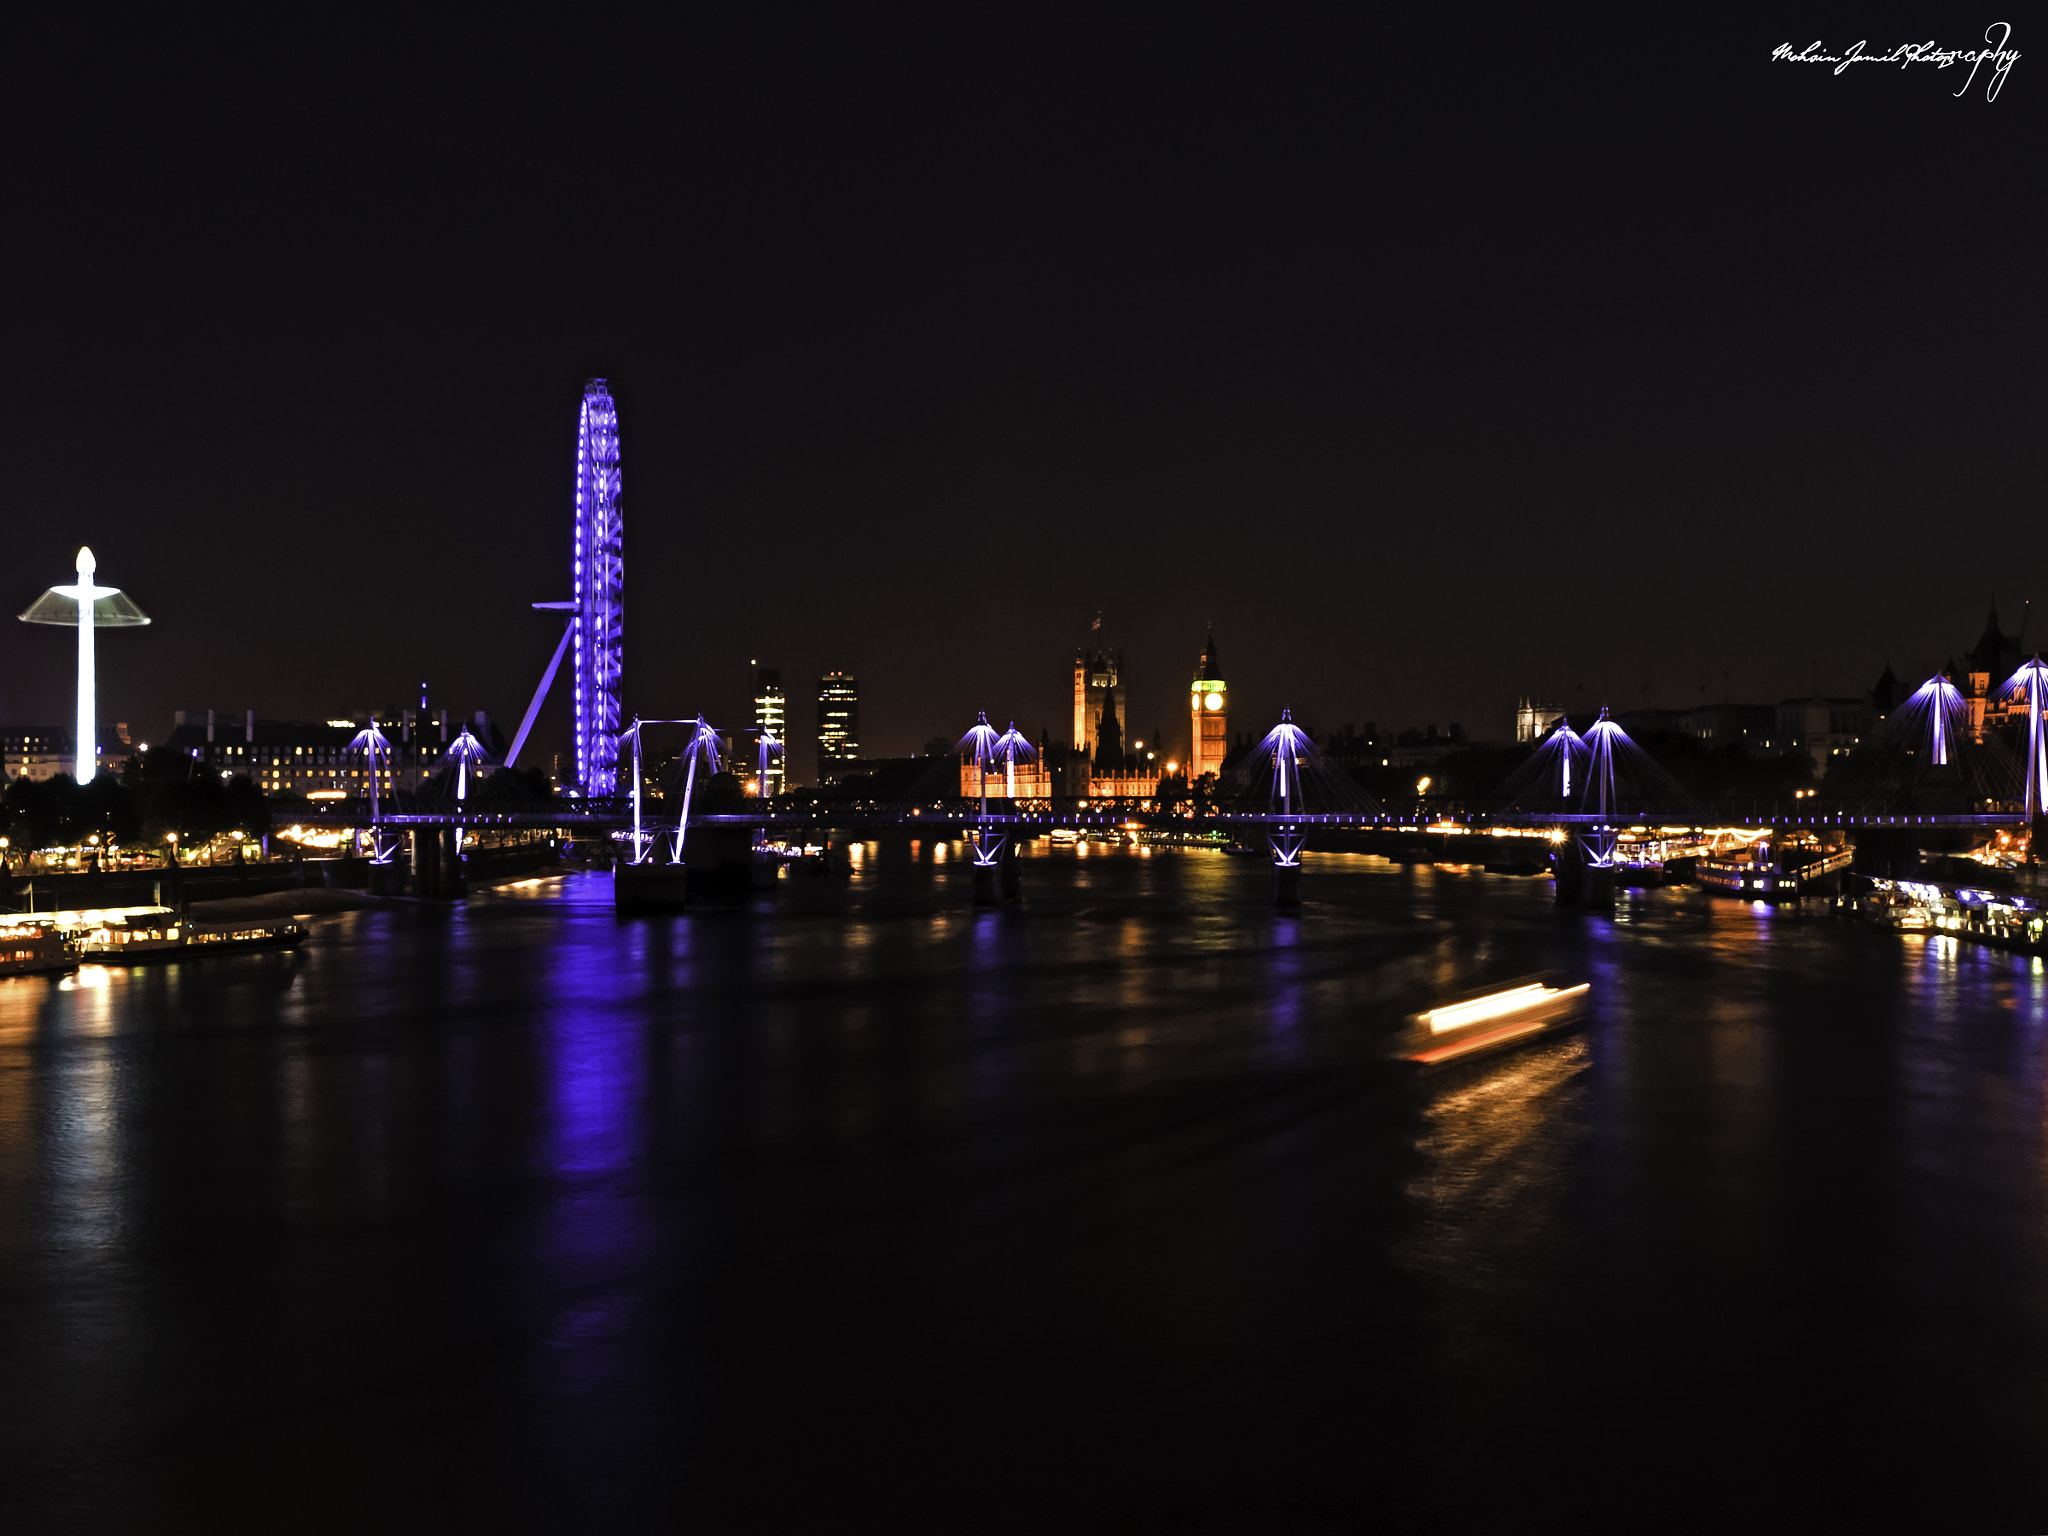 Photograph From Waterloo Bridge by Mohsin Jamil on 500px